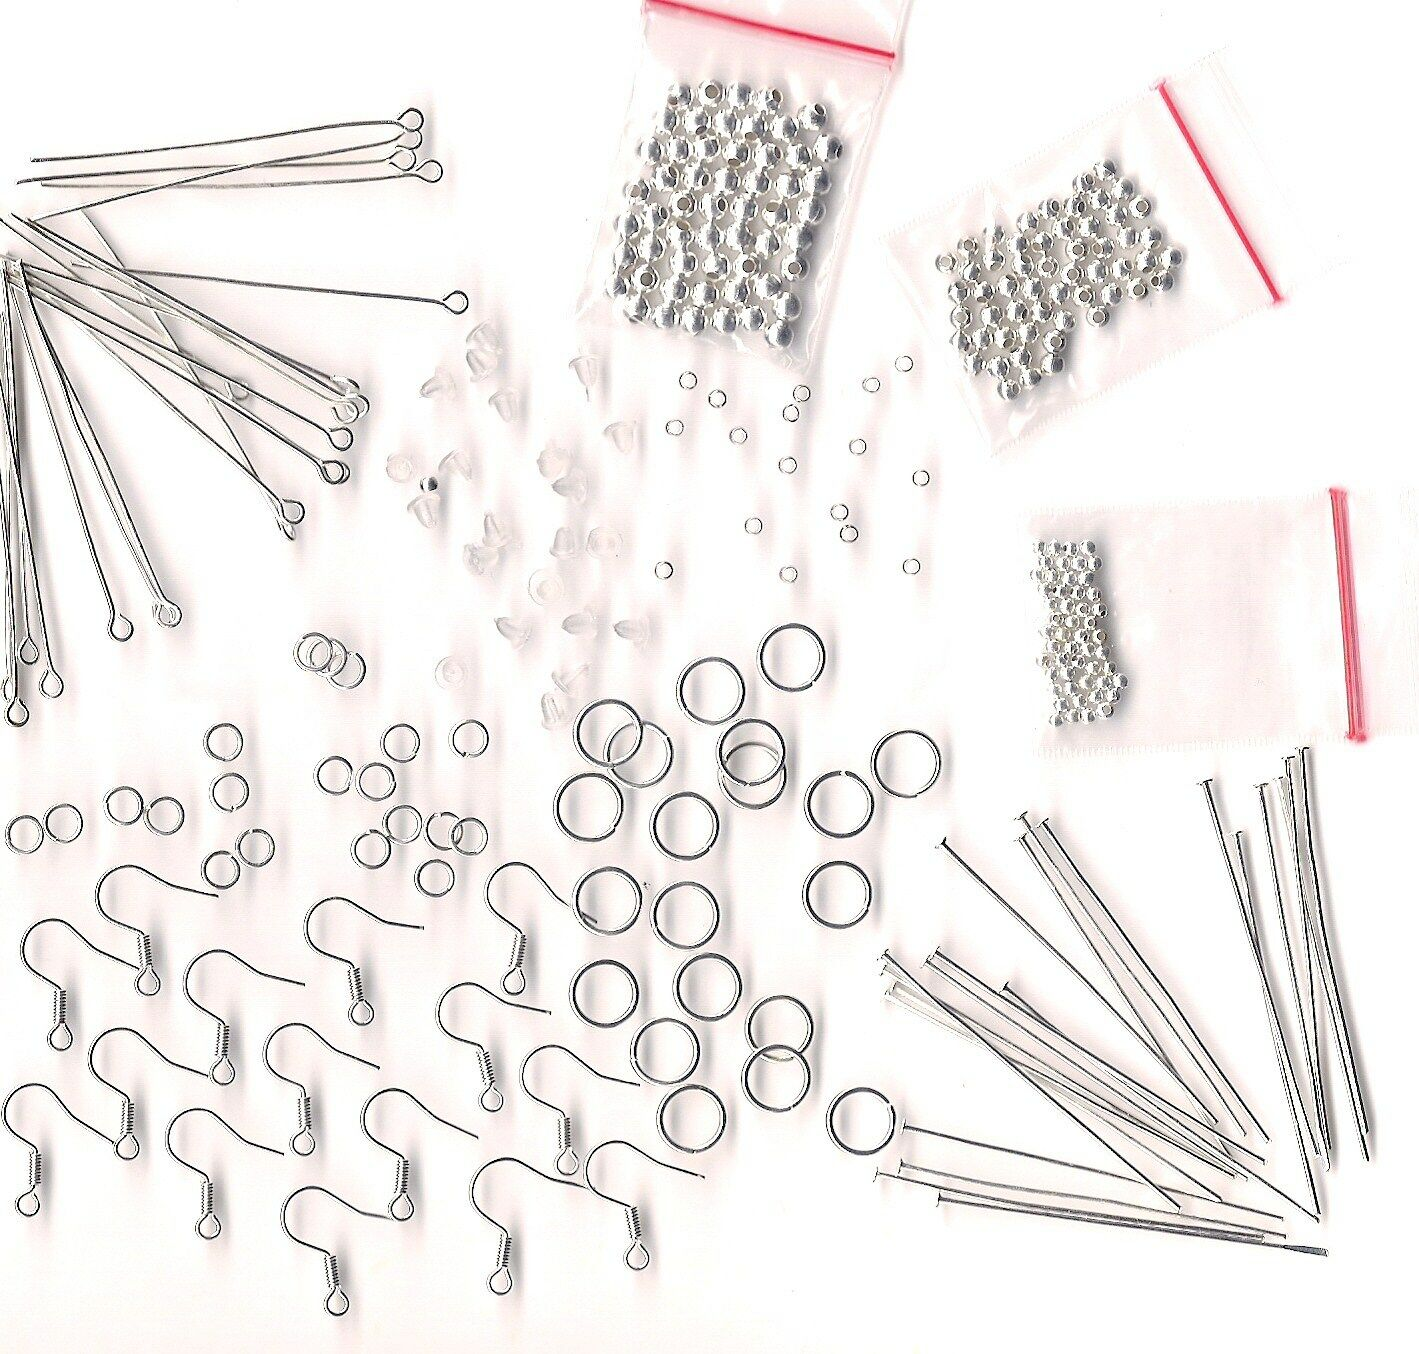 Earring supplies canada jobs